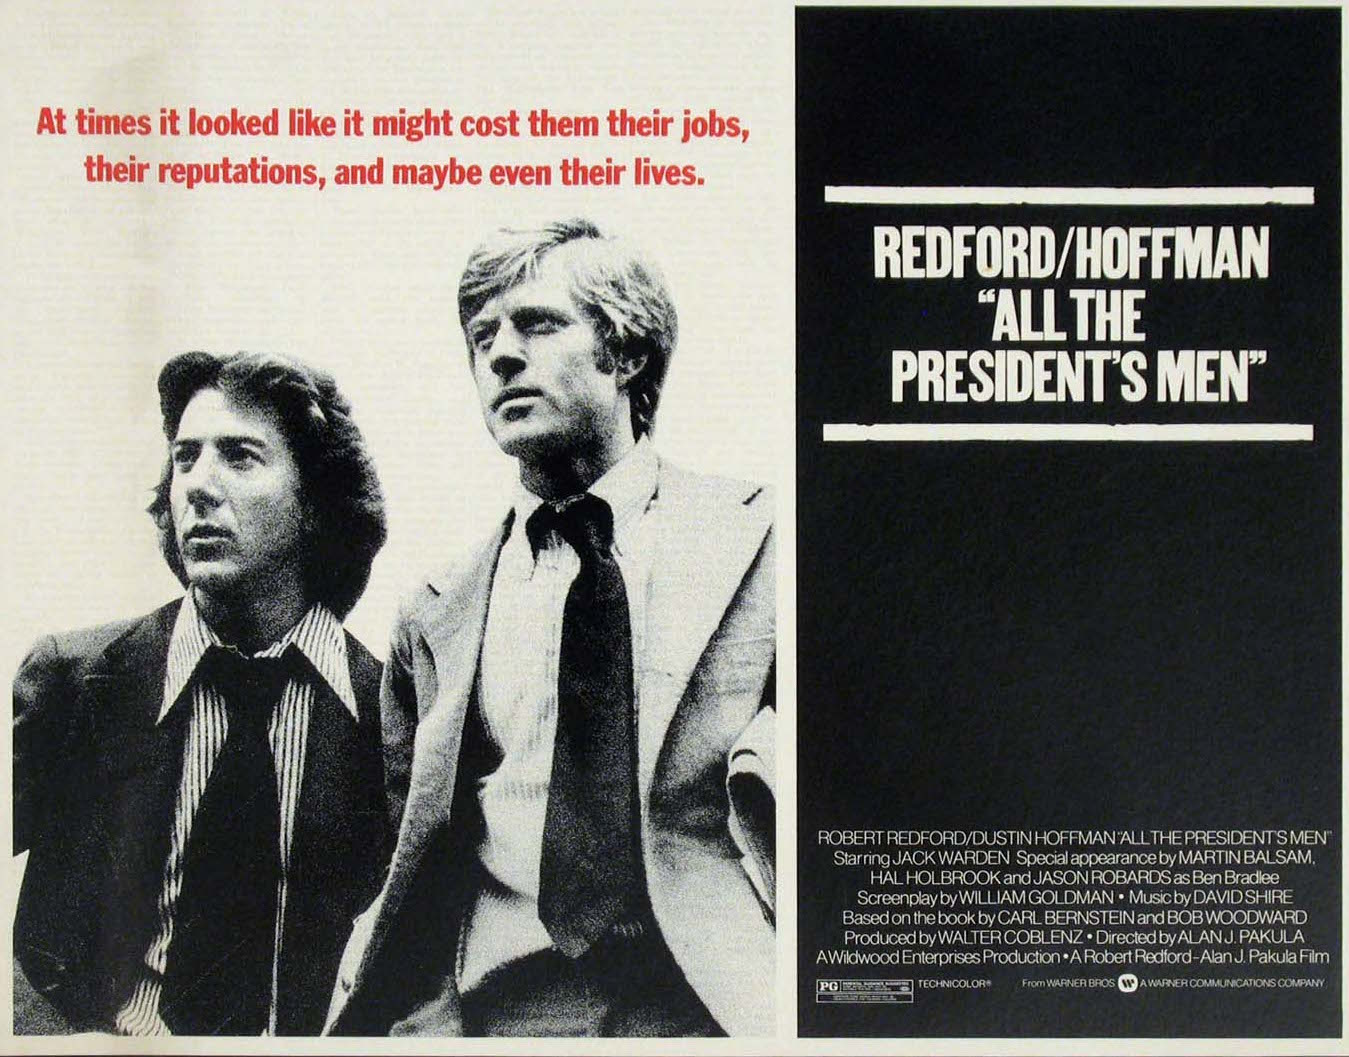 40th anniversary of Watergate scandal film All the President's Men